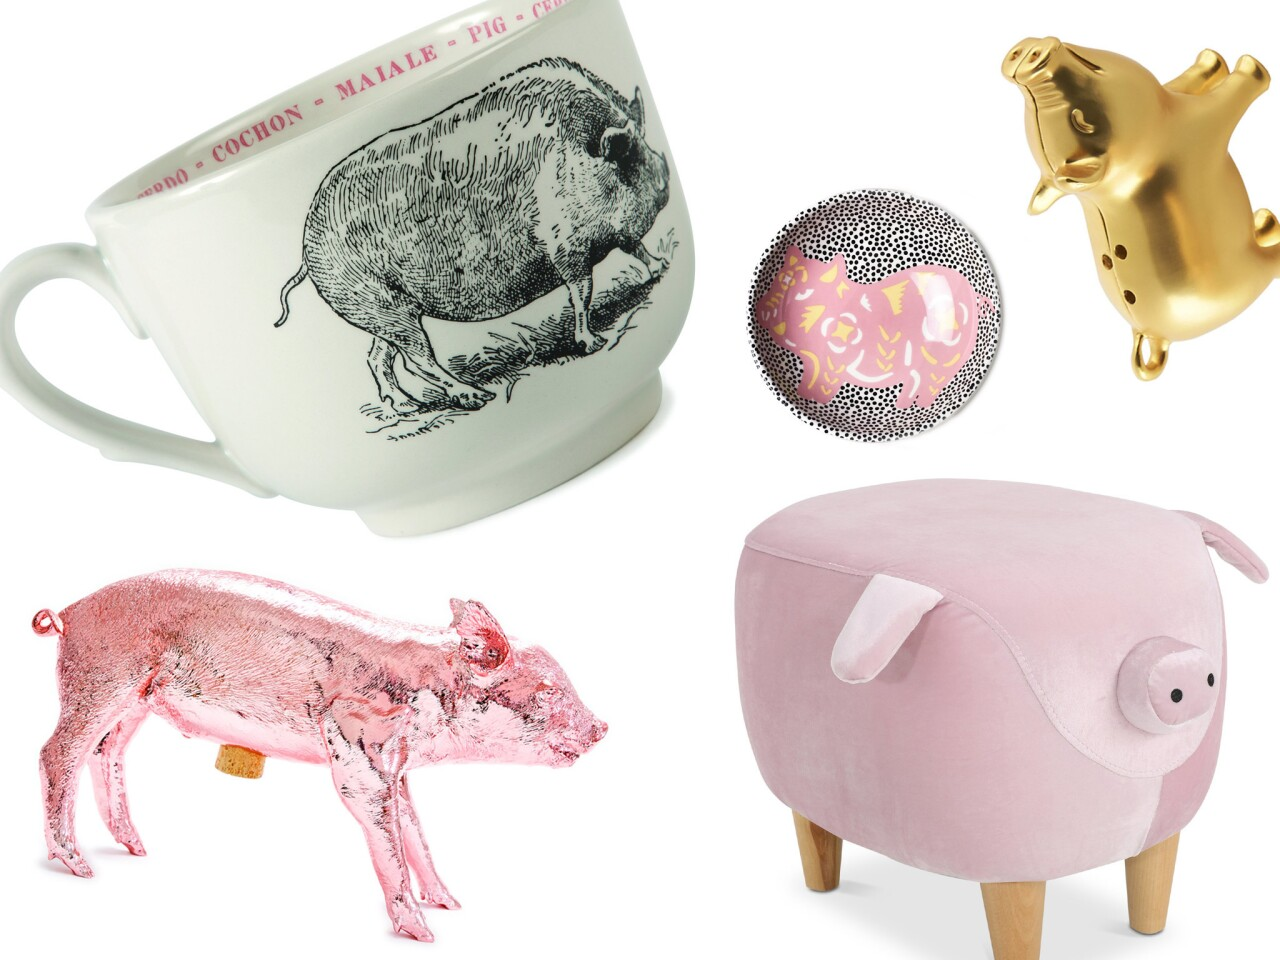 Consider decorating your home with these items inspired by the Year of the Pig.